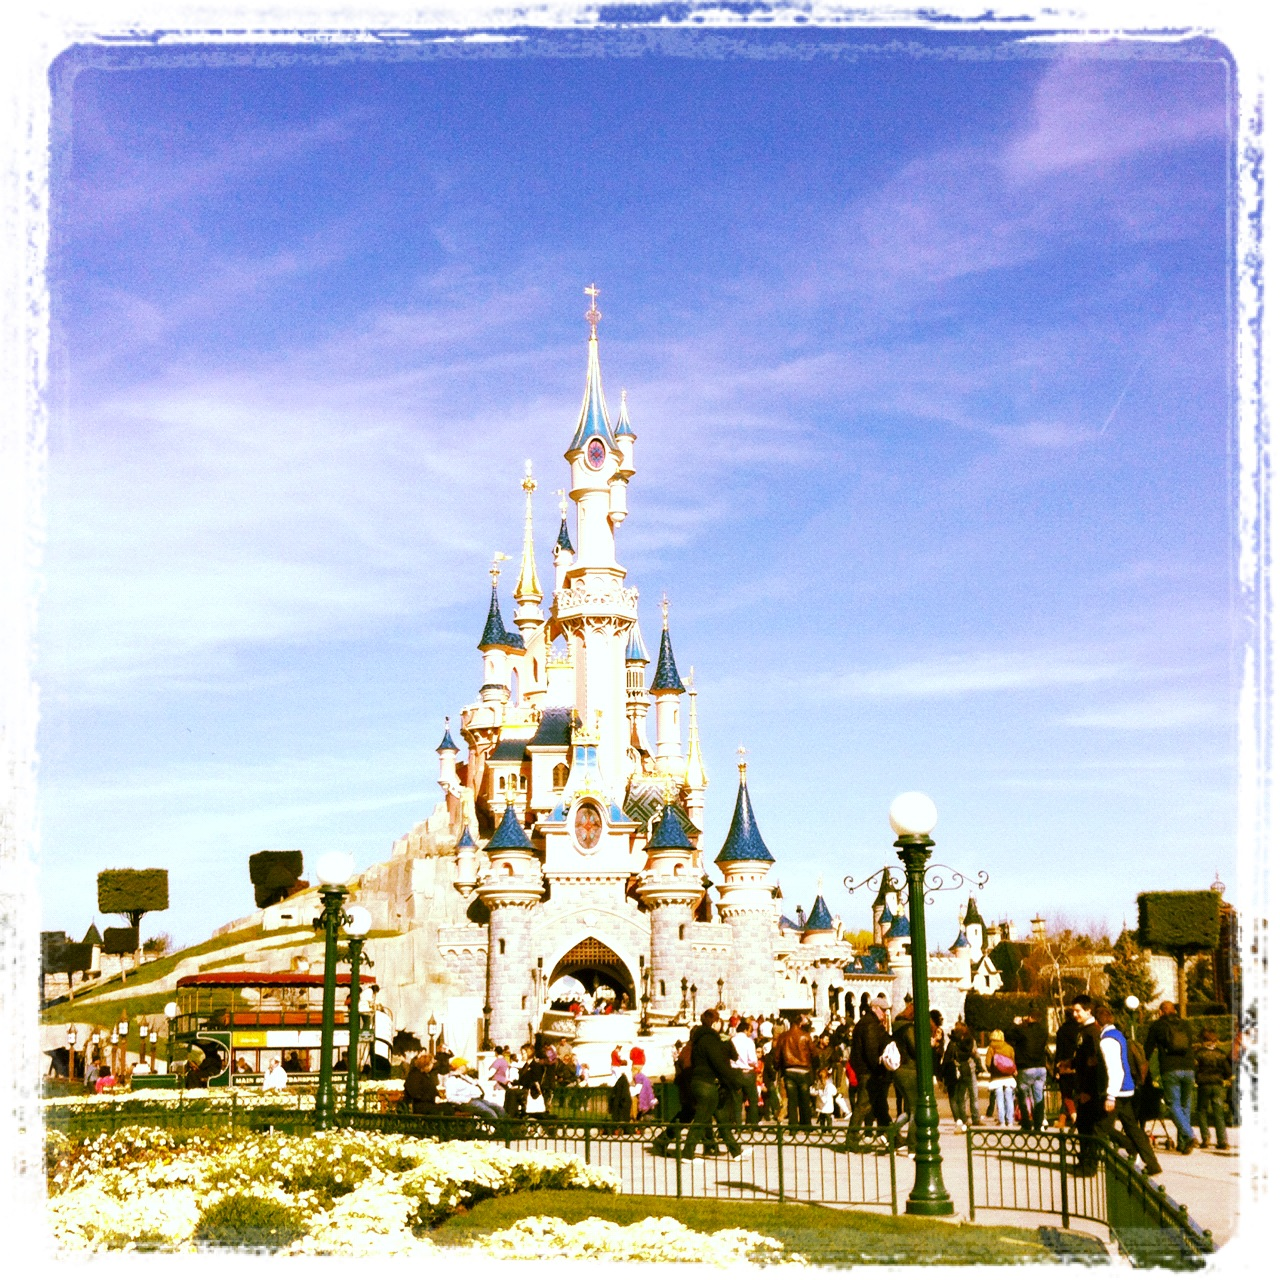 Sleeping Beauty's castle Disneyland Paris